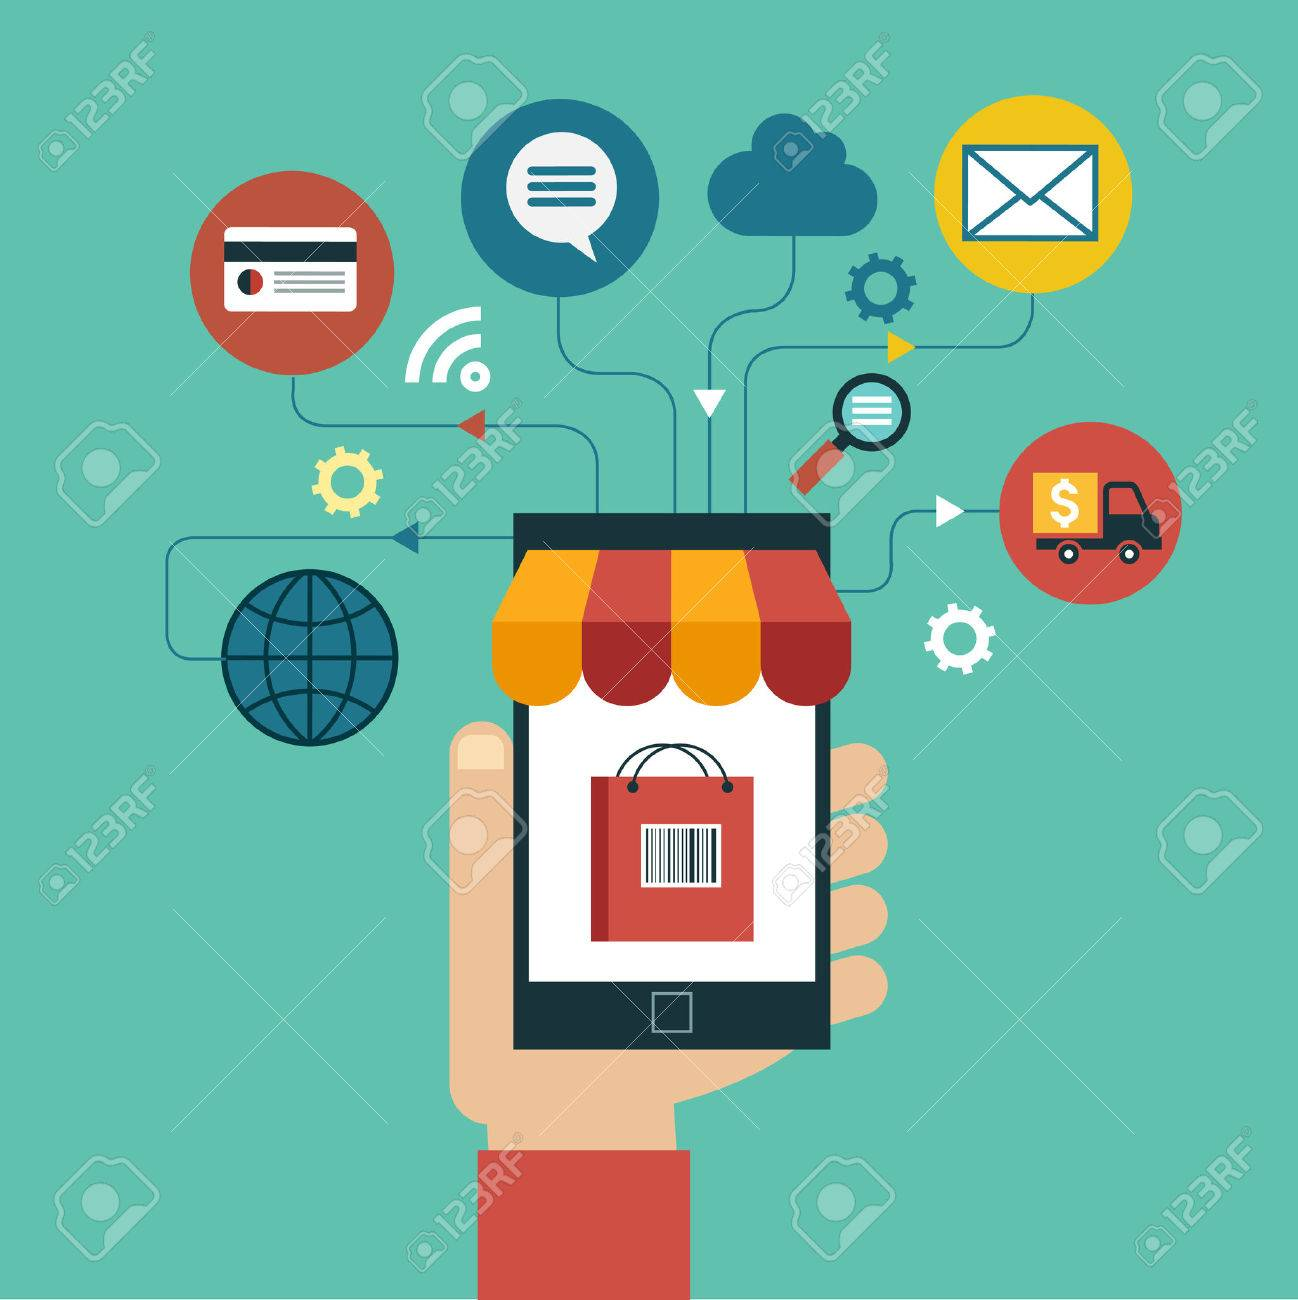 e commerce concept. Flat design vector illustration. Human hand with mobile phone, tablet, laptop and interface icons Standard-Bild - 46515332